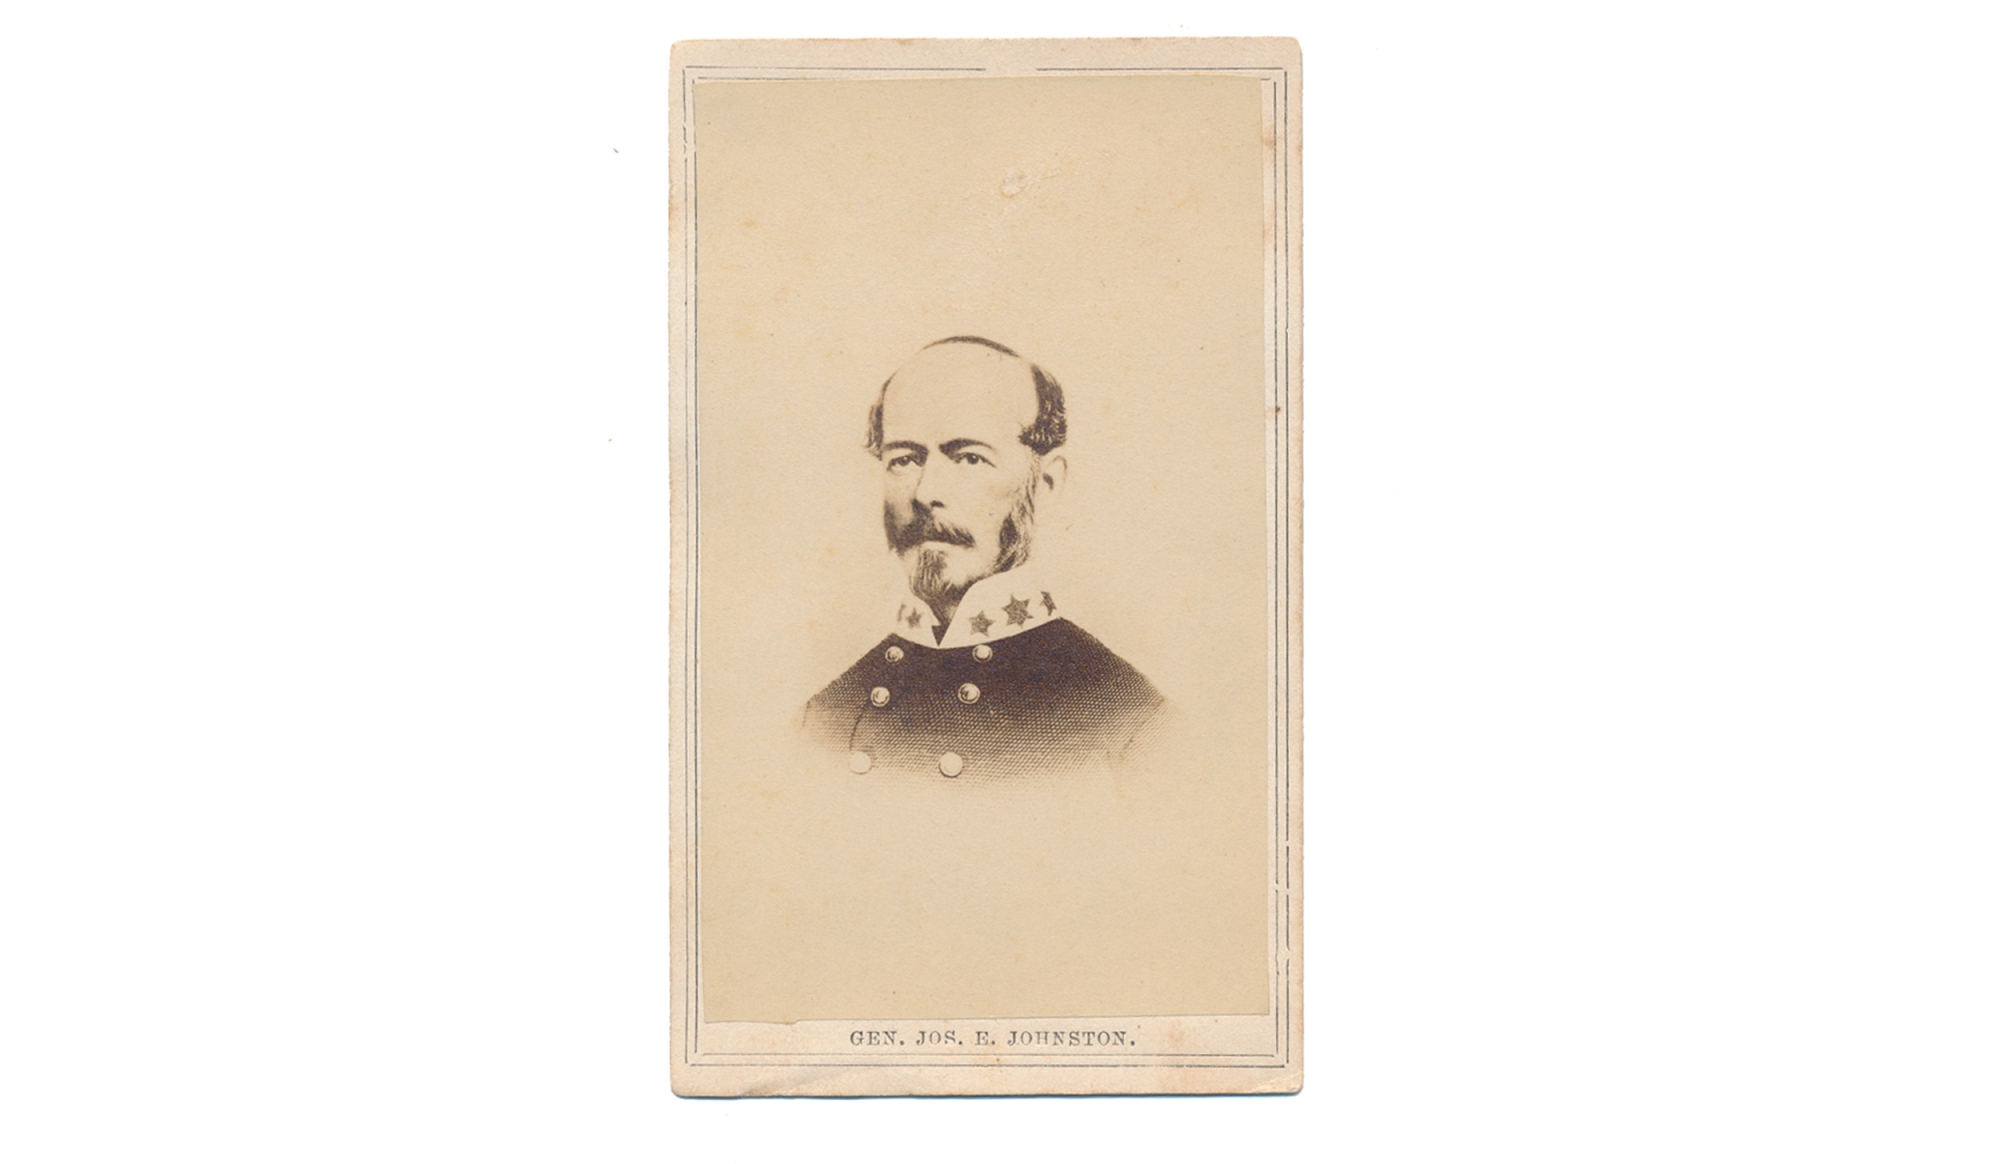 WARTIME CDV LITHOGRAPH OF CONFEDERATE GENERAL JOSEPH E. JOHNSTON